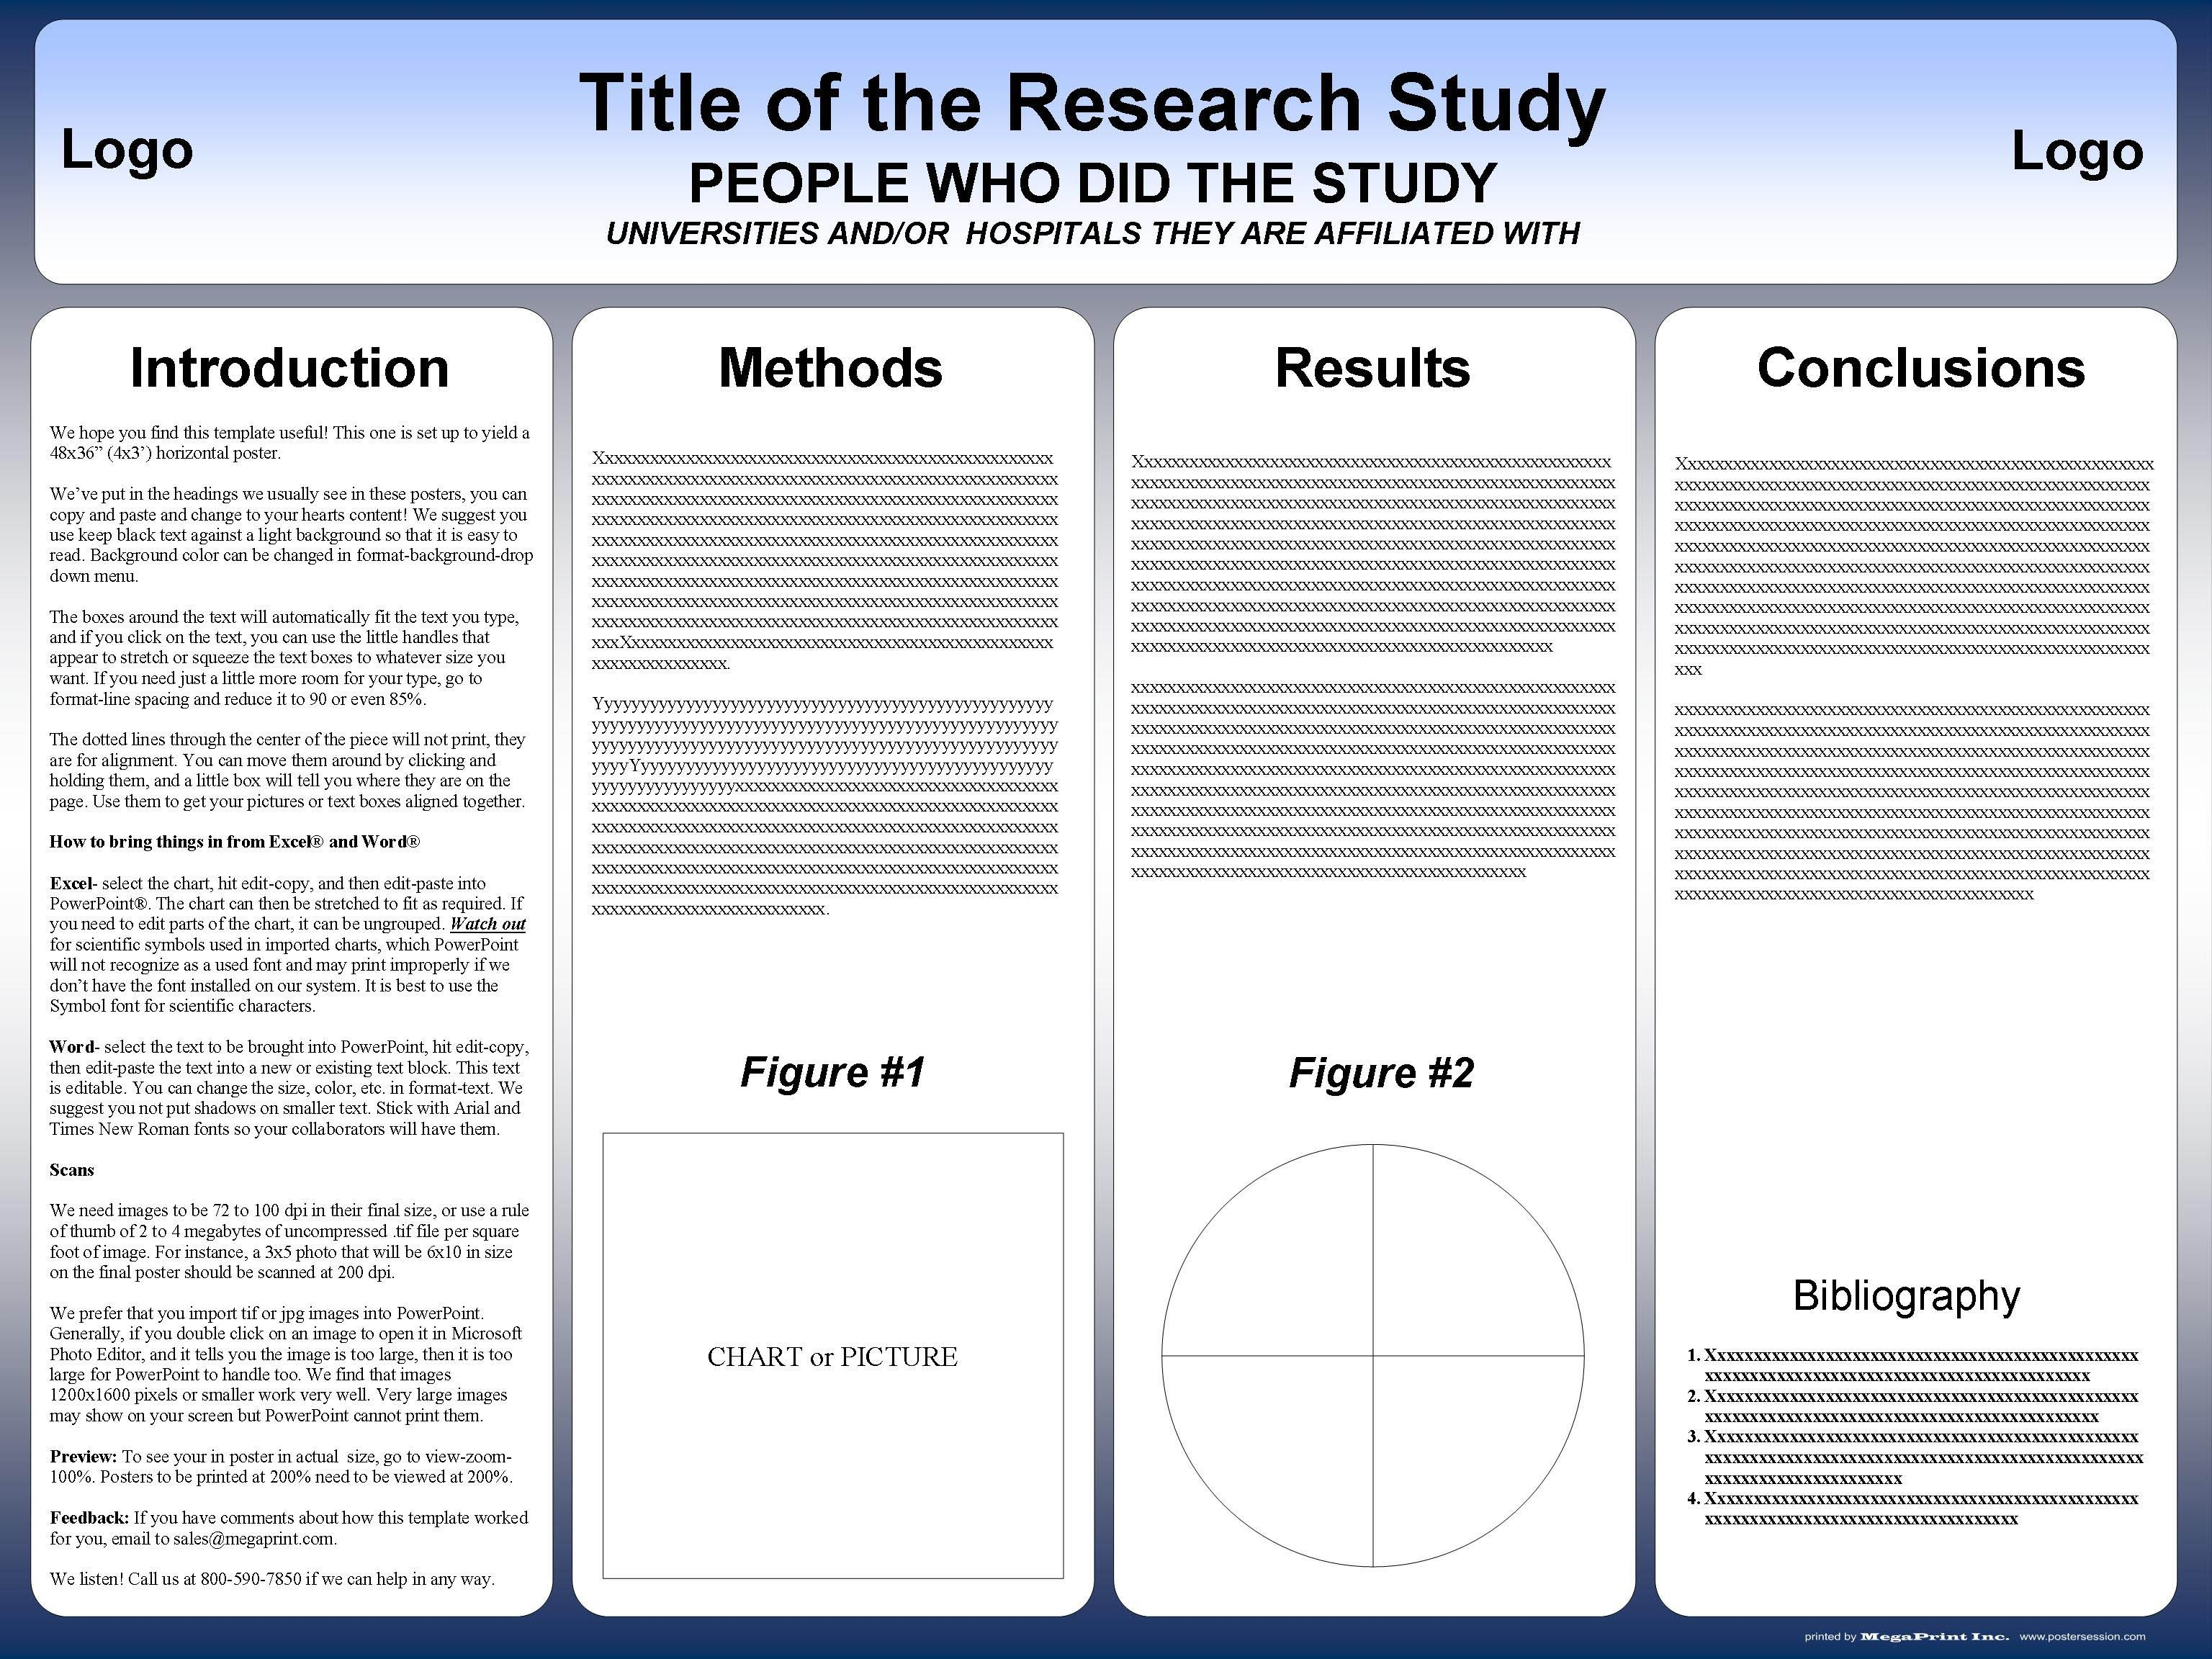 002 Sensational Research Poster Template Powerpoint Design  Scientific PptFull